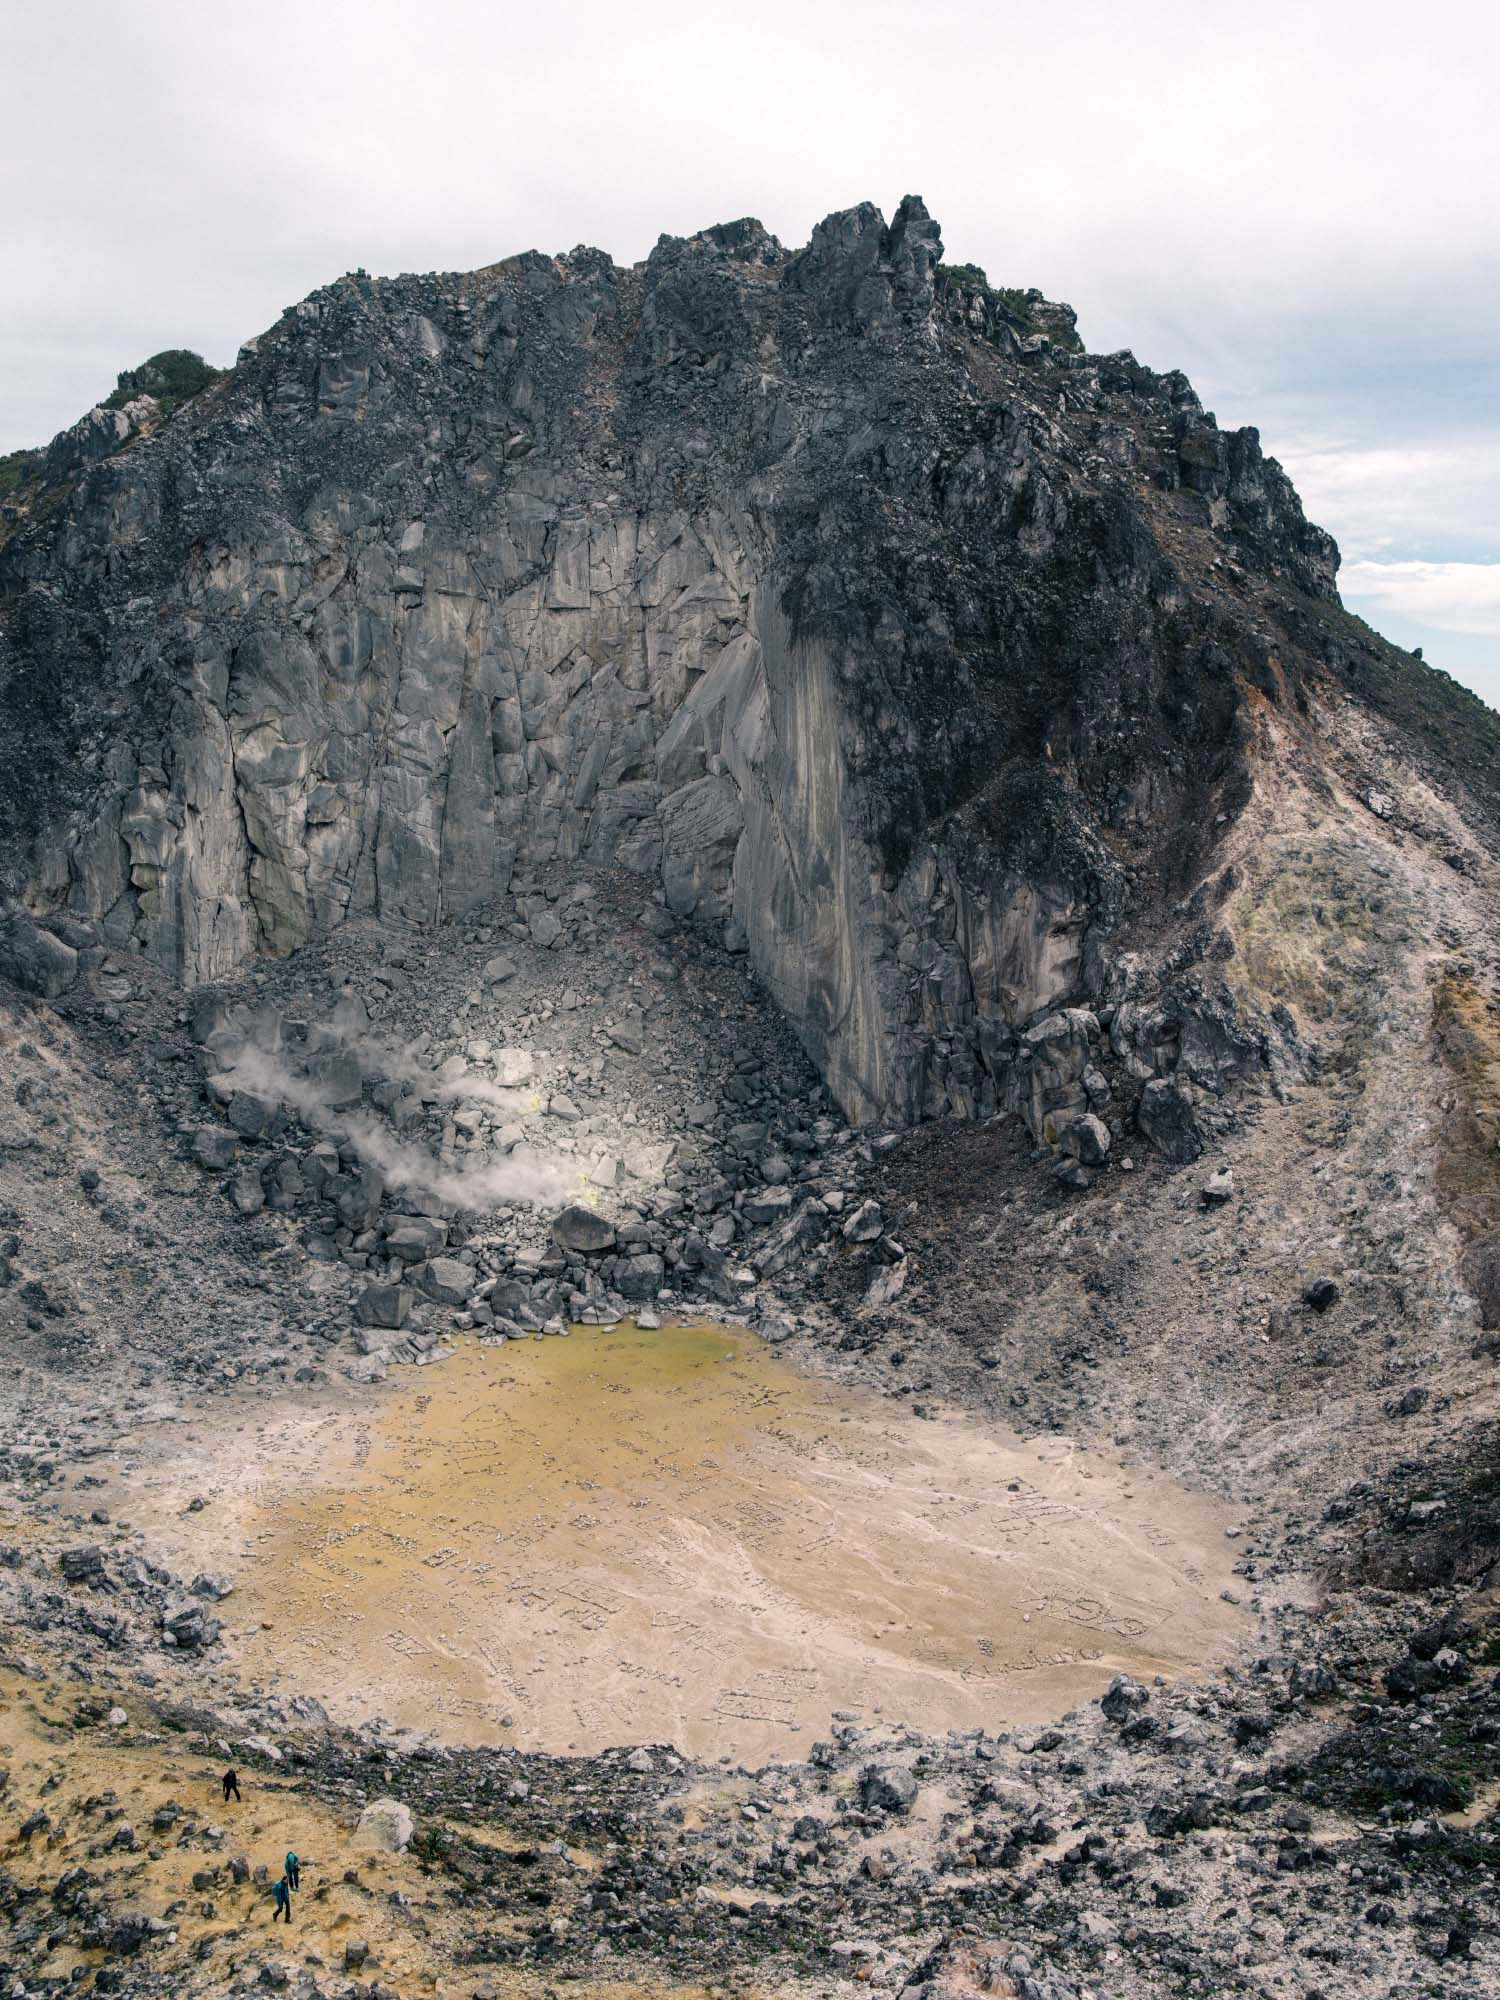 The crater of Mount Sibayak.